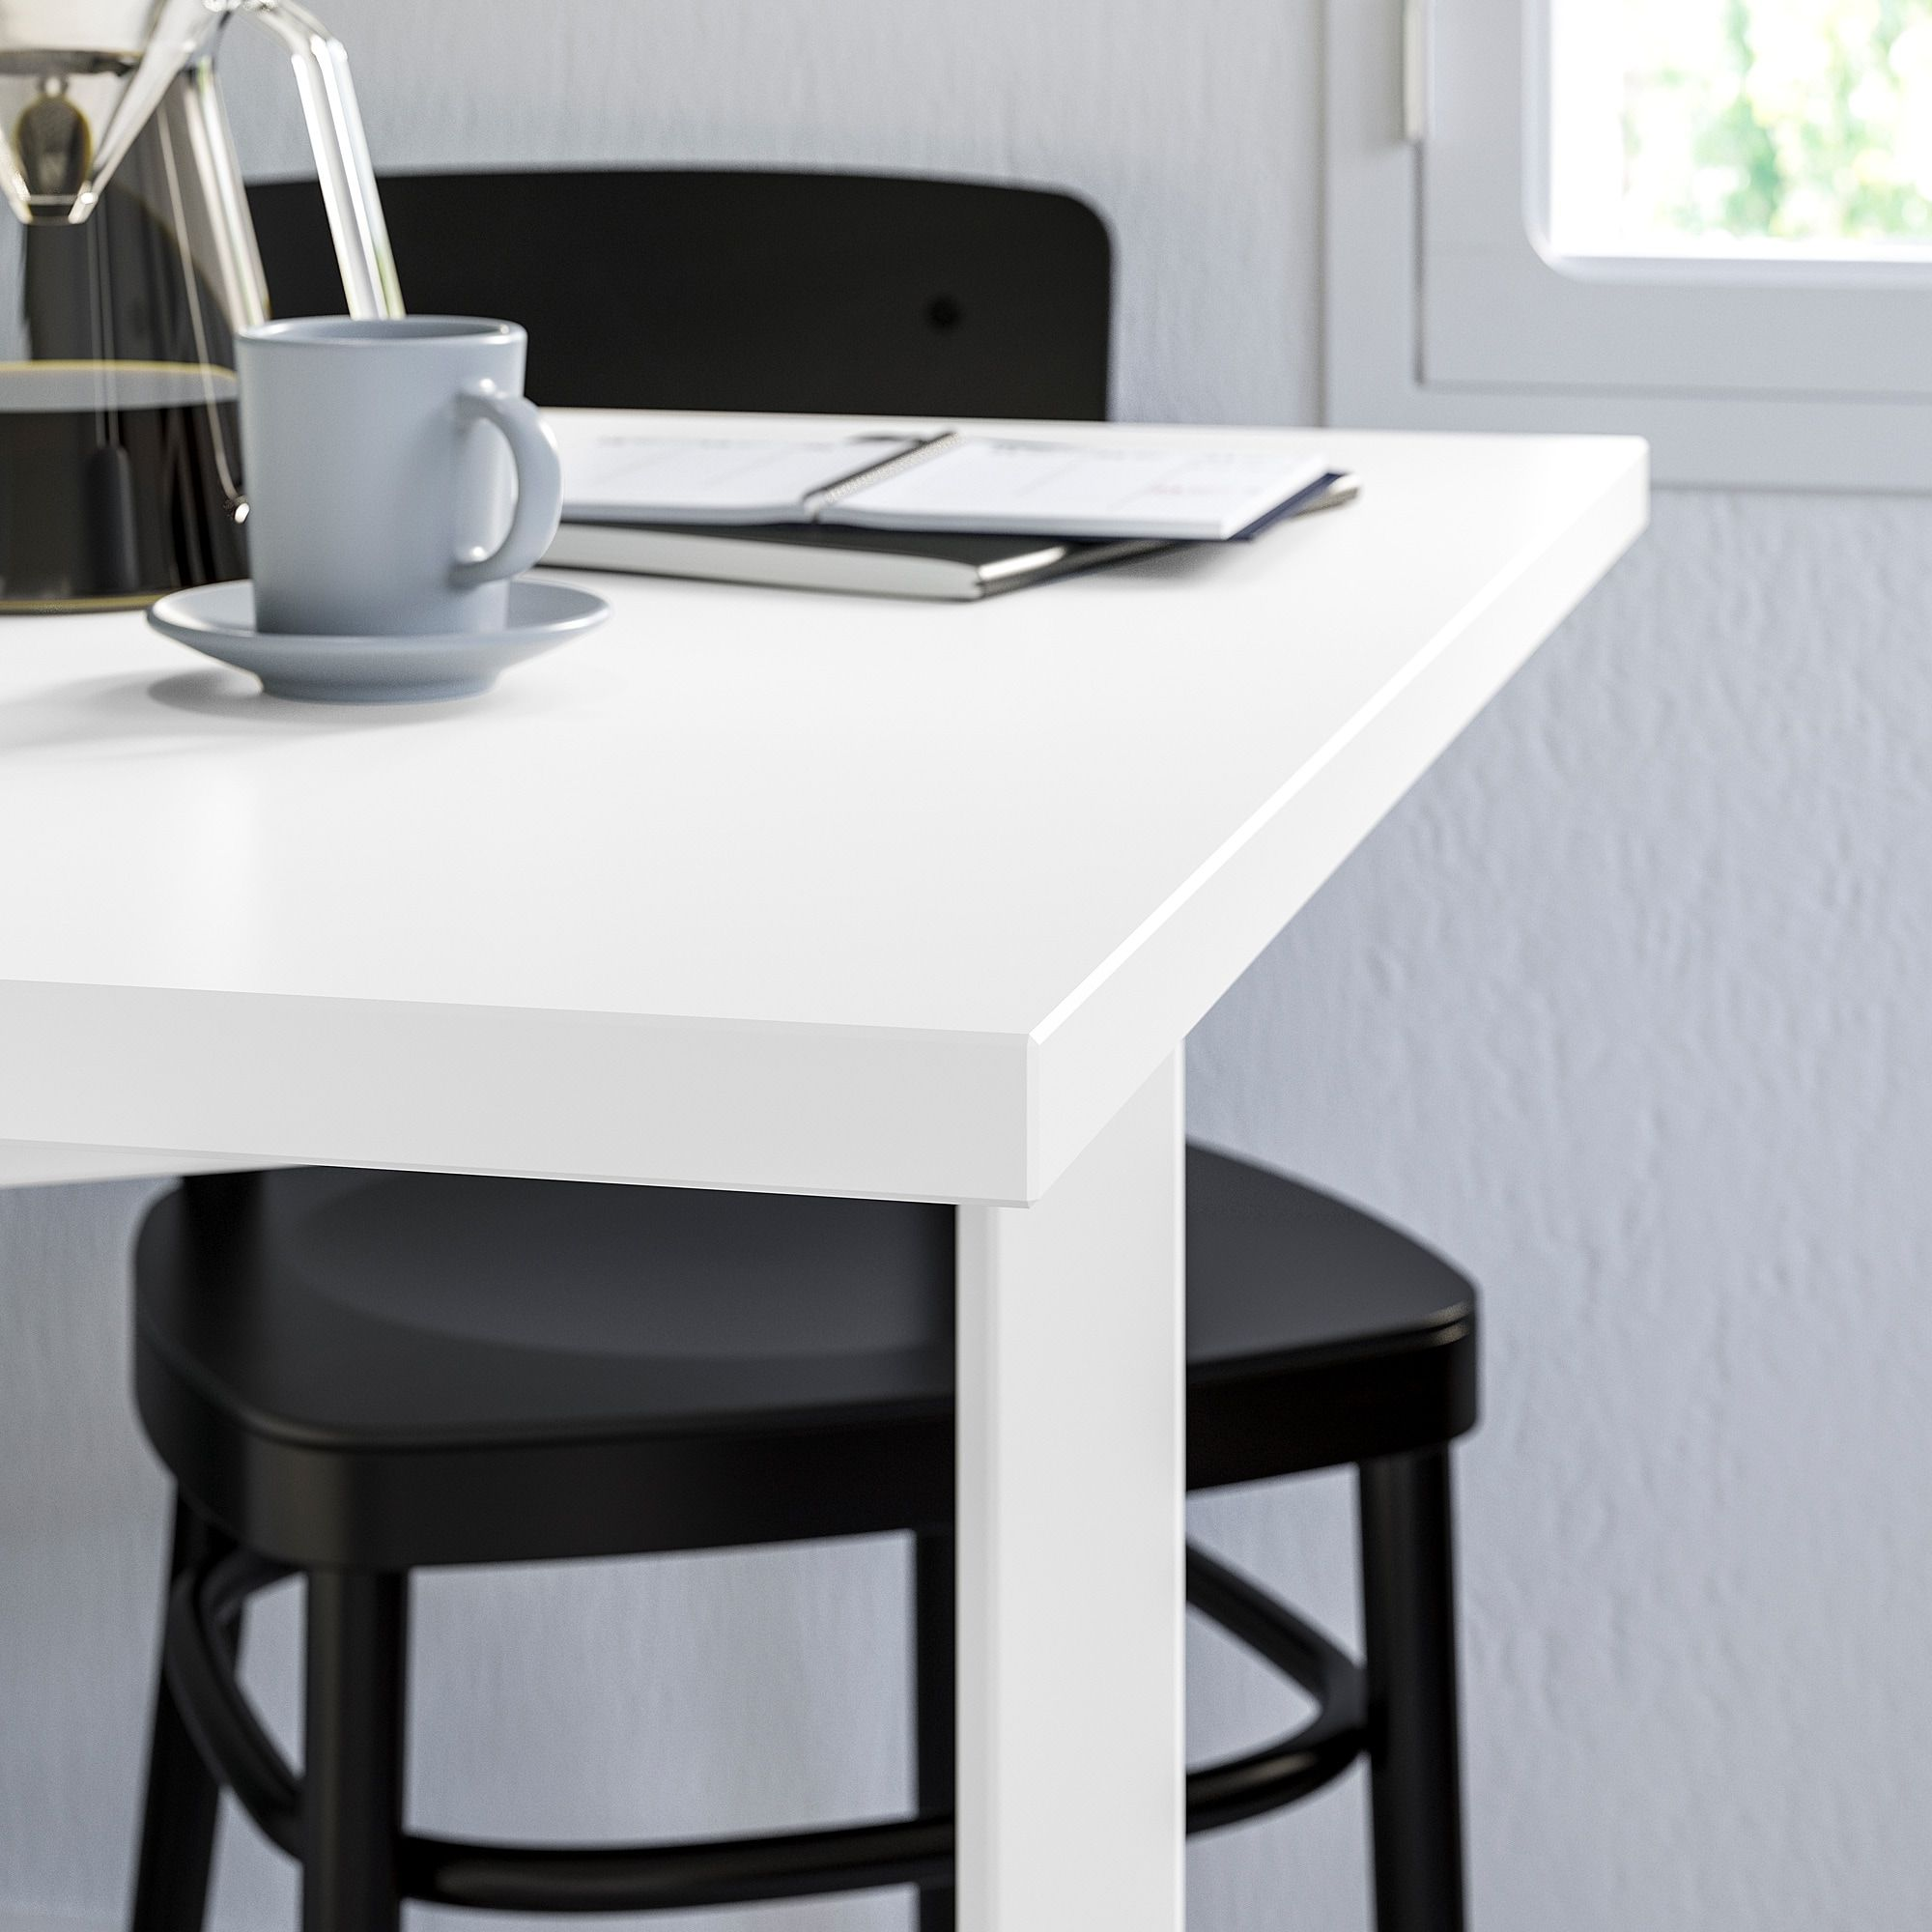 Ikea Norden White Gateleg Table Products In 2019 Norden